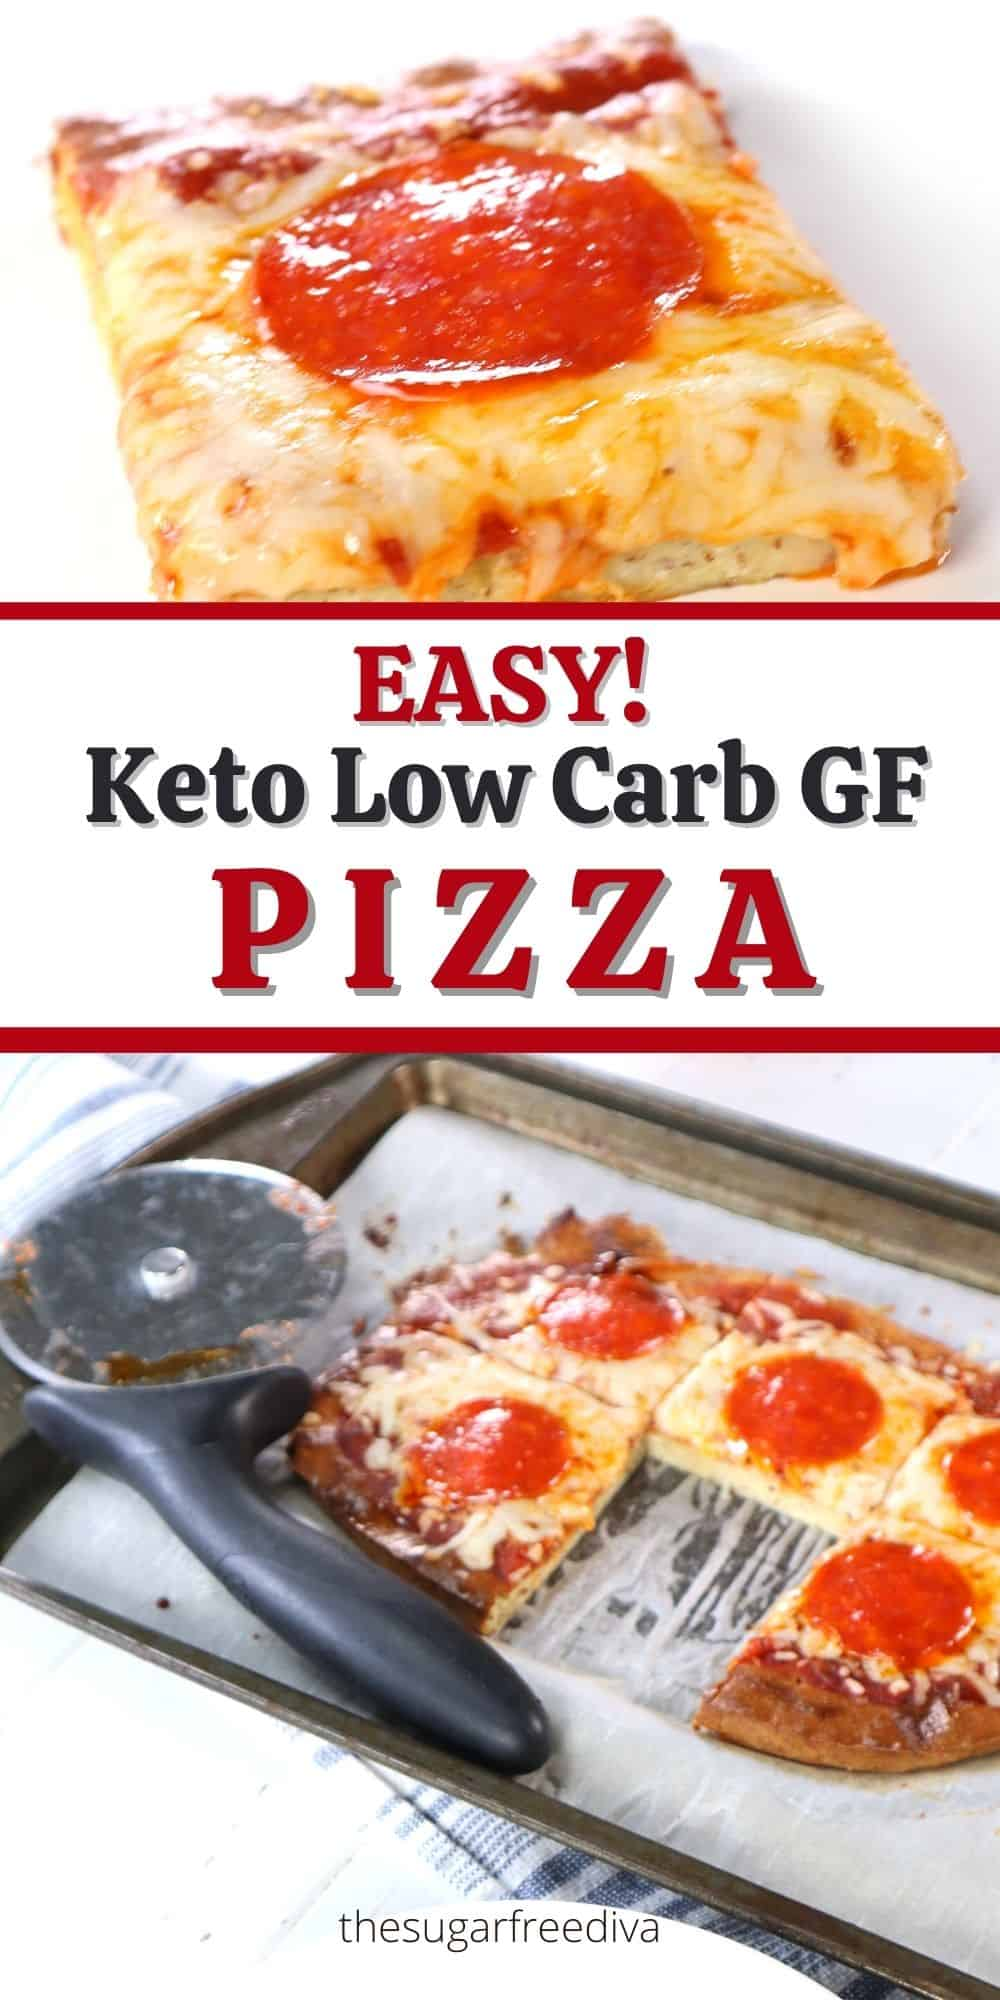 Easy Keto Low Carb Homemade Pizza